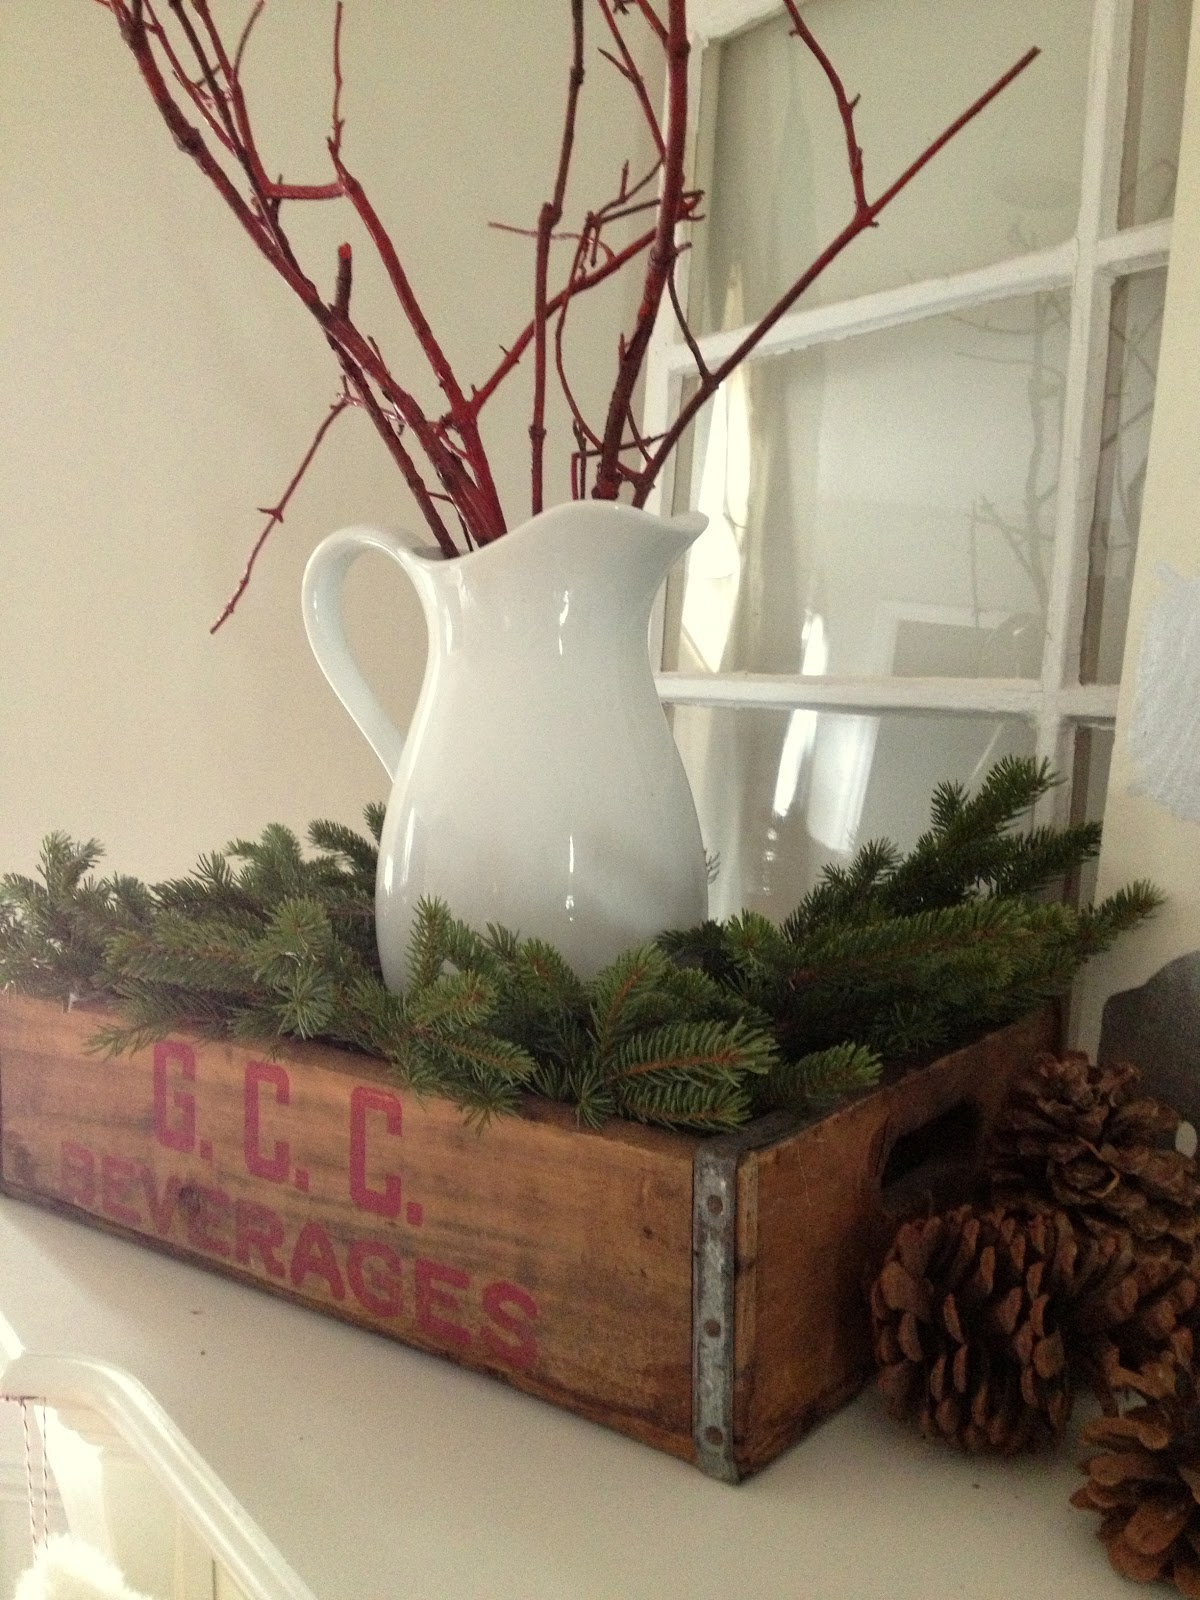 decorating addiction - Decorating Crates For Christmas